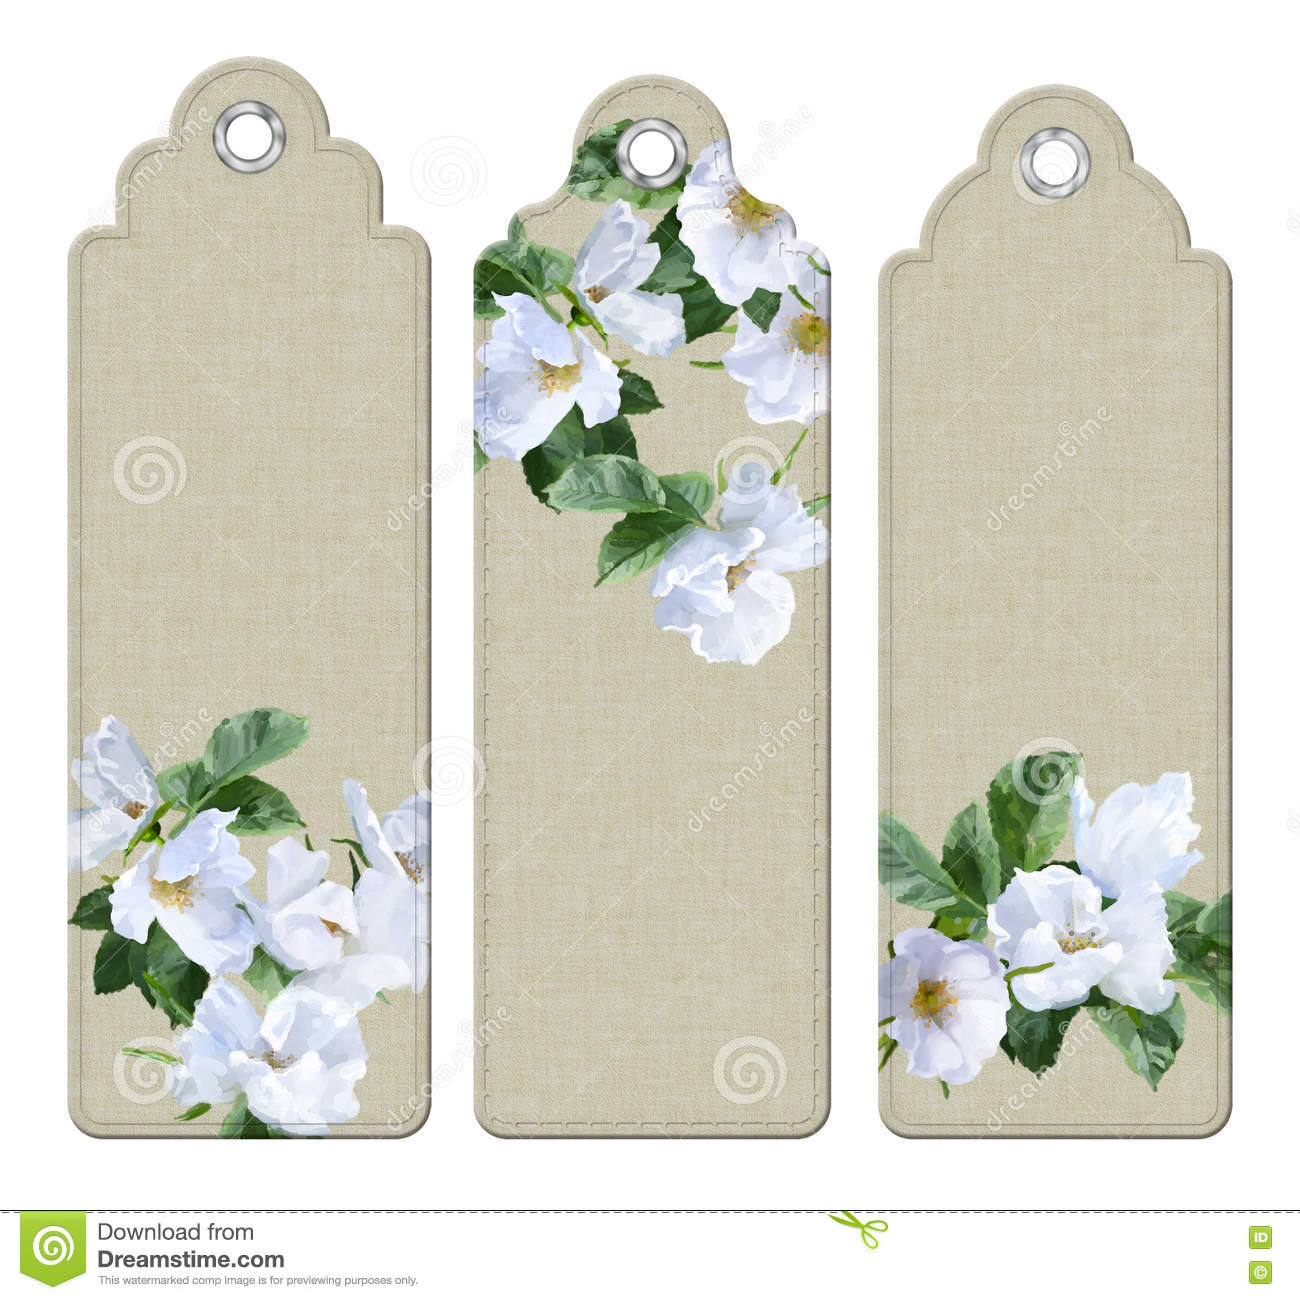 flower tags template free - watercolor painting flowers bookmark stock illustration